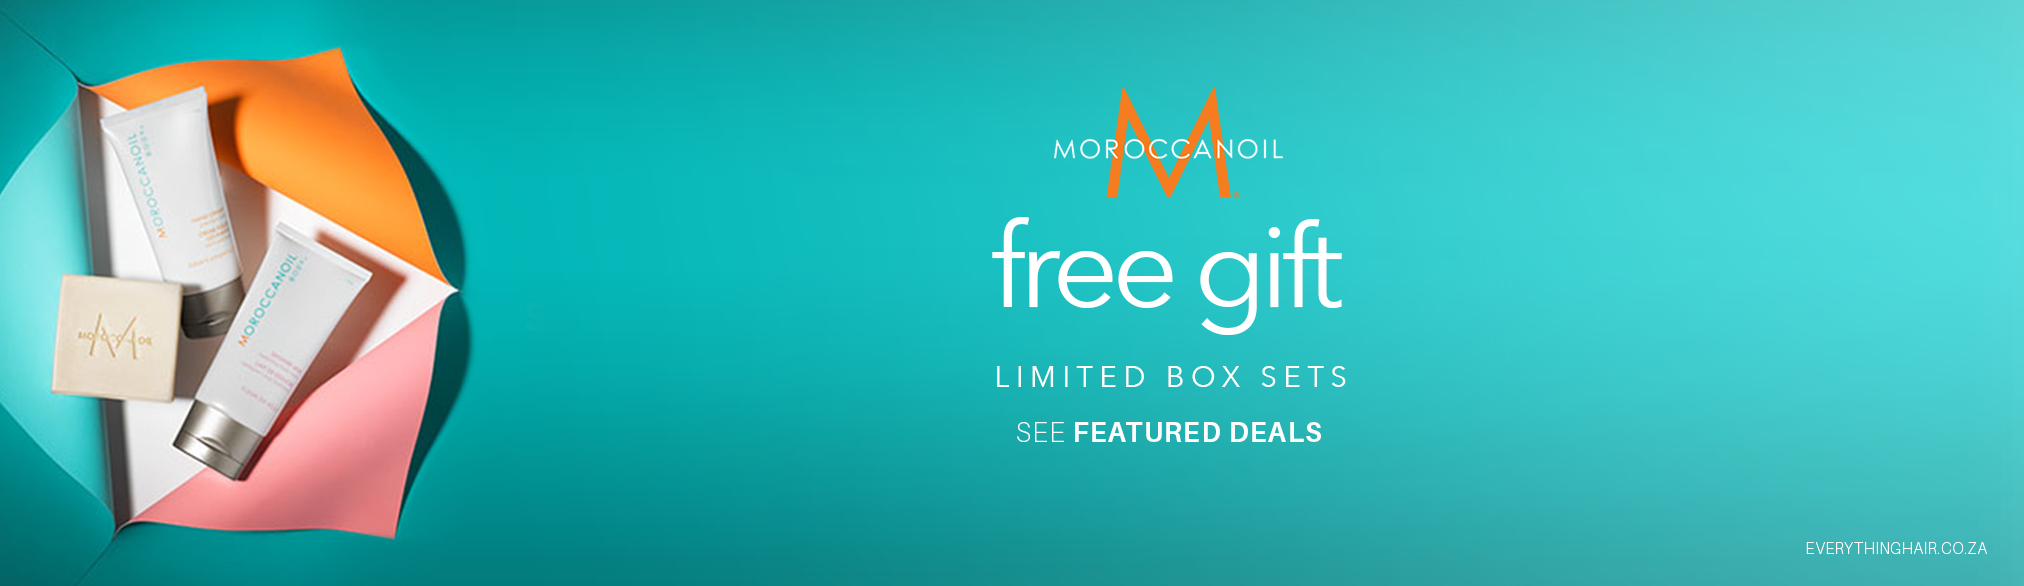 Moroccanoil Gifts & Packs